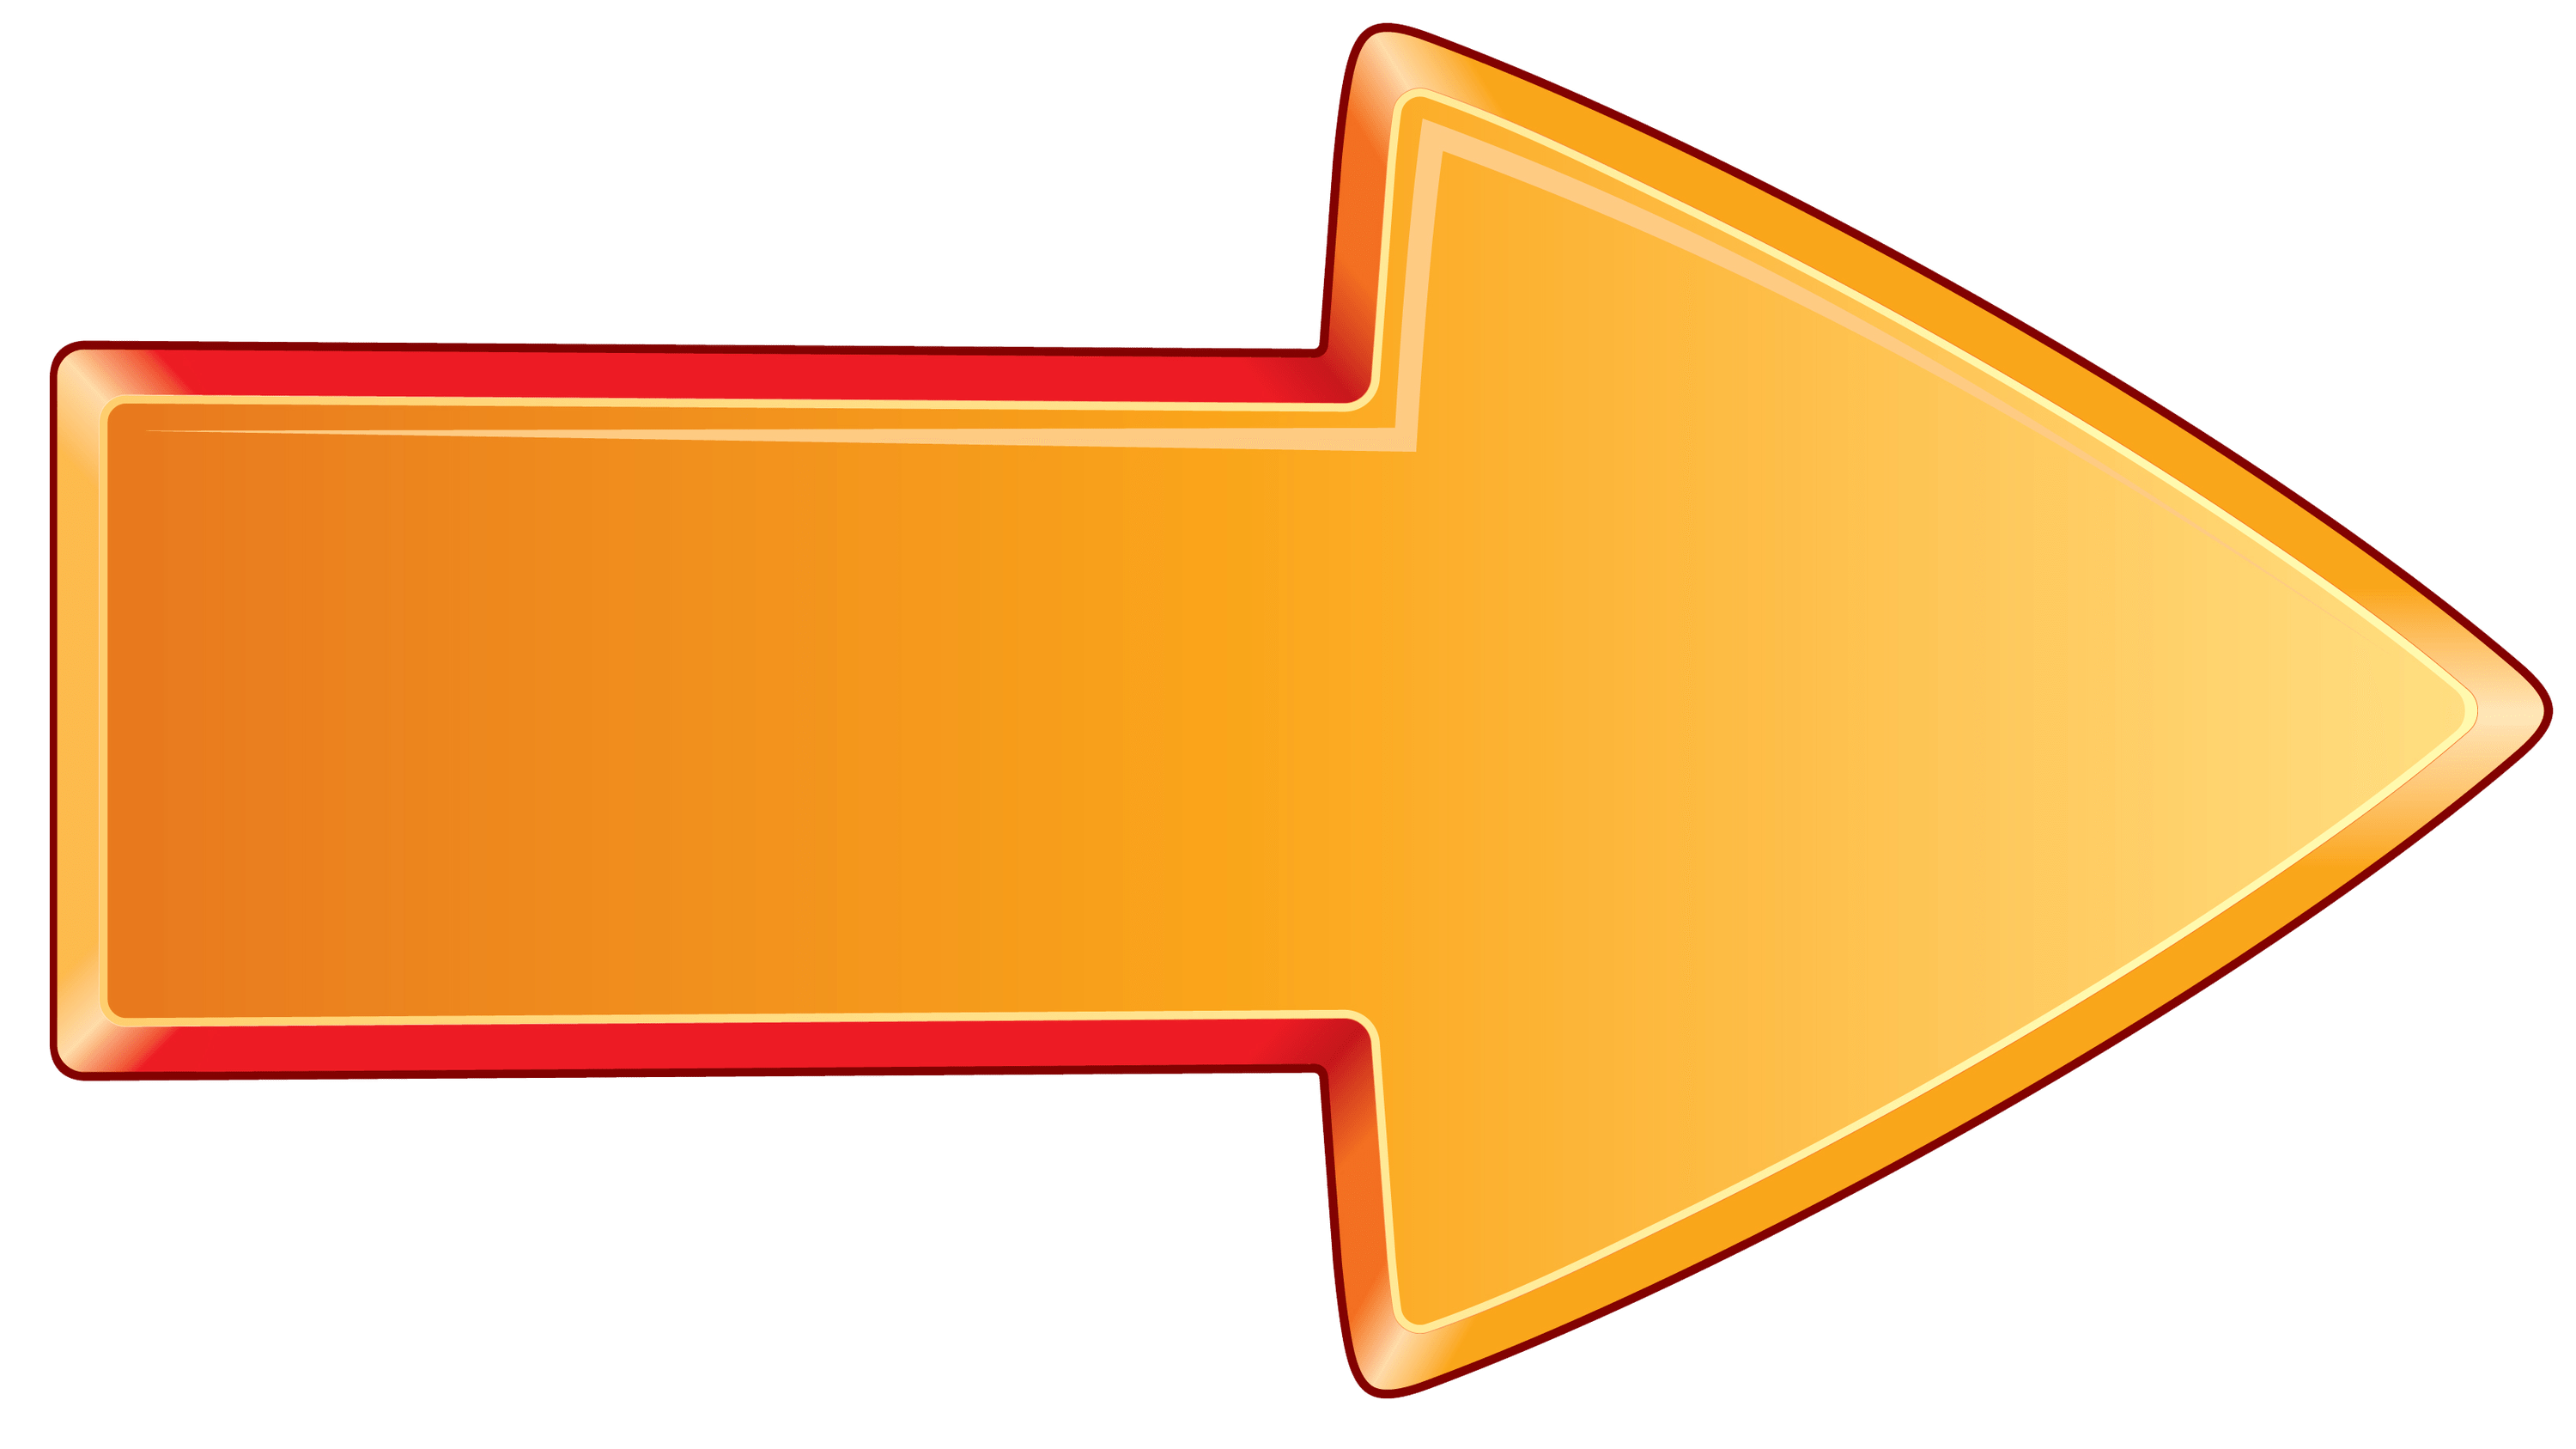 Arrow Bold Orange Right - Arrow PNG HD